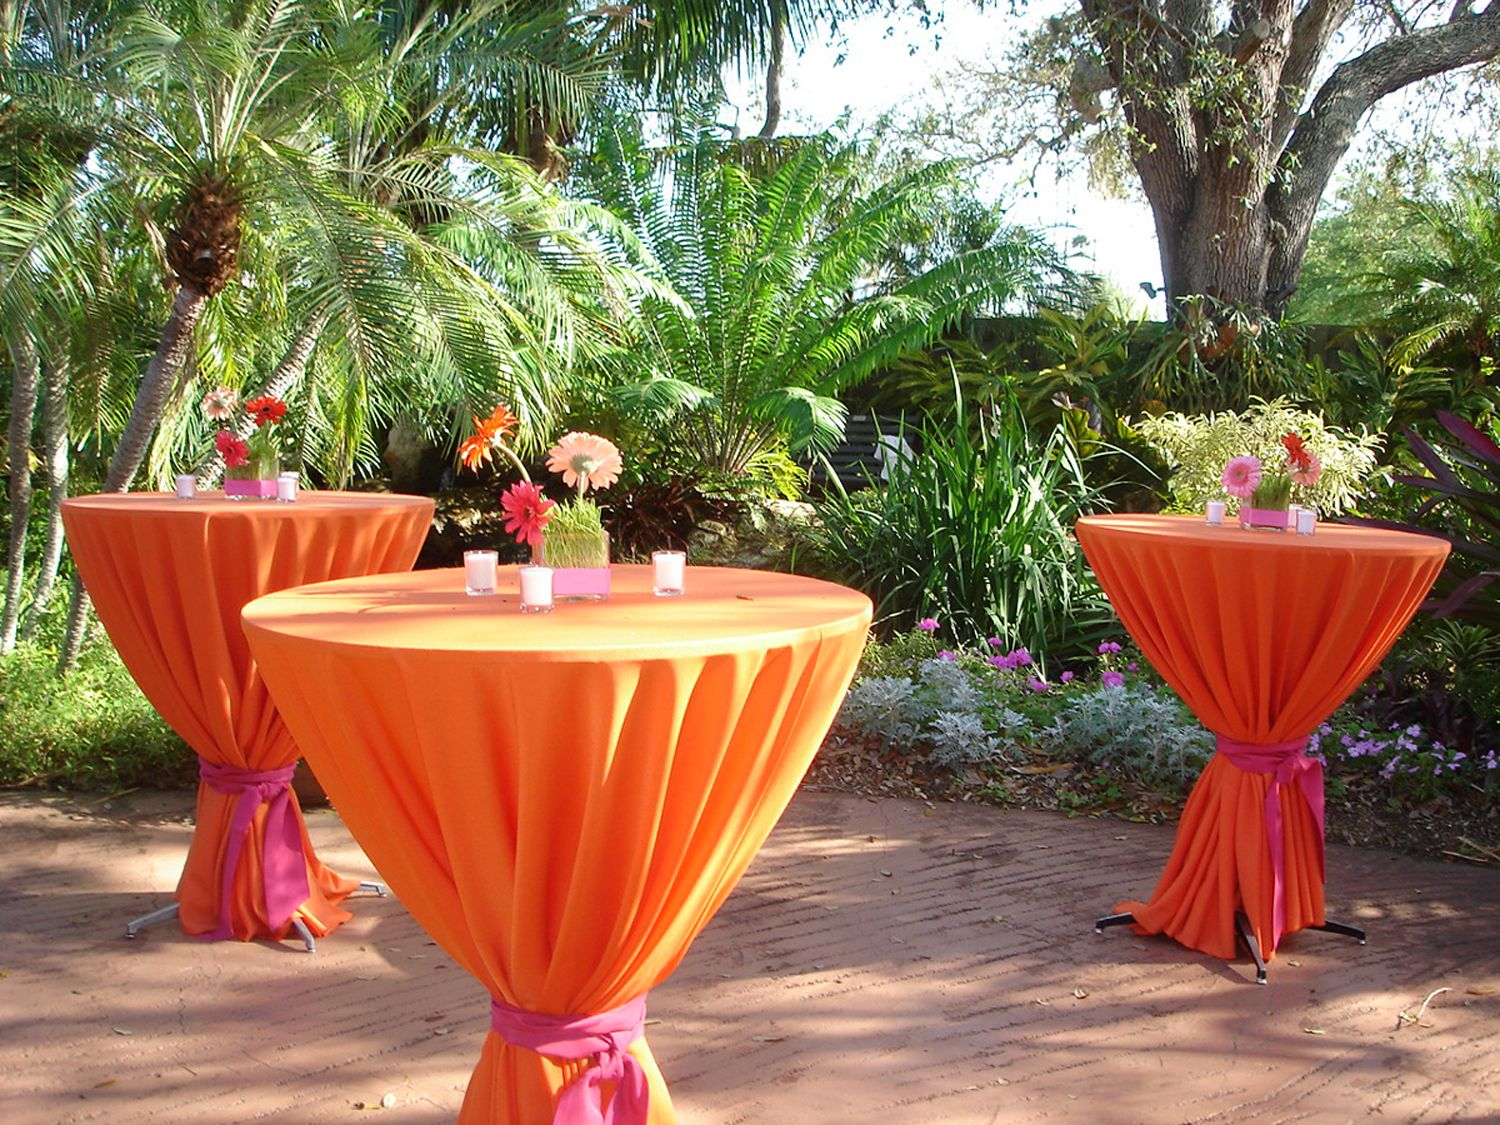 Wedding Cocktail Party Ideas Part - 49: Outdoor Backyard Summer Party | Sarasota Garden Club-Wedding And Cocktail  Party Reception U2013 Flowers